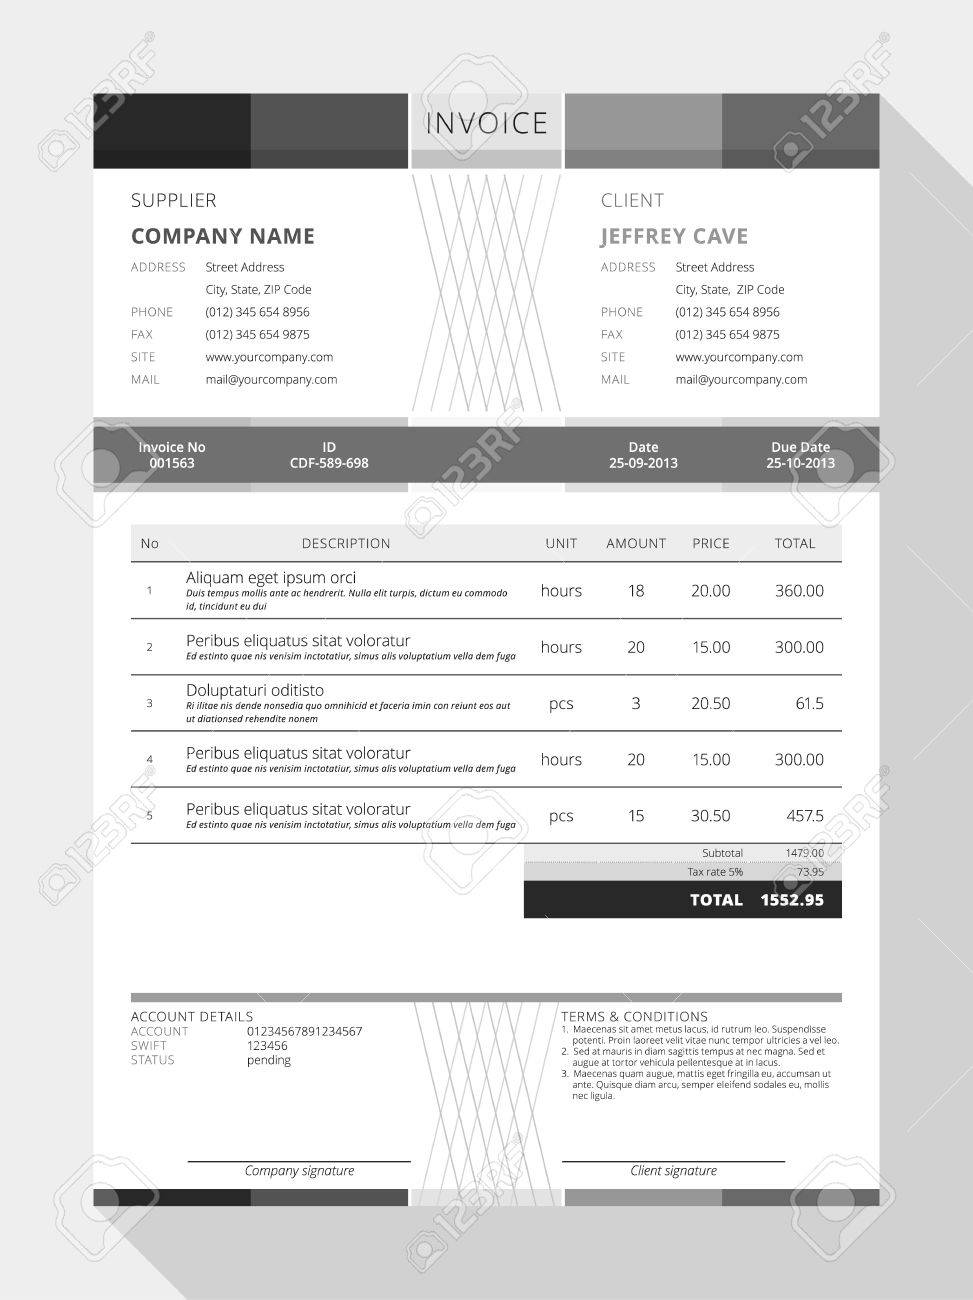 Modaoxus  Personable Design An Invoice  Professional Graphic Design Invoice  With Great Vector Customizable Invoice Form Template Design Vector   Design An Invoice With Amusing Invoice Ideas Also Auto Repair Invoice Sample In Addition Free Invoice And Estimate Software And Fill In Invoice Template As Well As What Is The Invoice Additionally Business Invoices Printing From Happytomco With Modaoxus  Great Design An Invoice  Professional Graphic Design Invoice  With Amusing Vector Customizable Invoice Form Template Design Vector   Design An Invoice And Personable Invoice Ideas Also Auto Repair Invoice Sample In Addition Free Invoice And Estimate Software From Happytomco